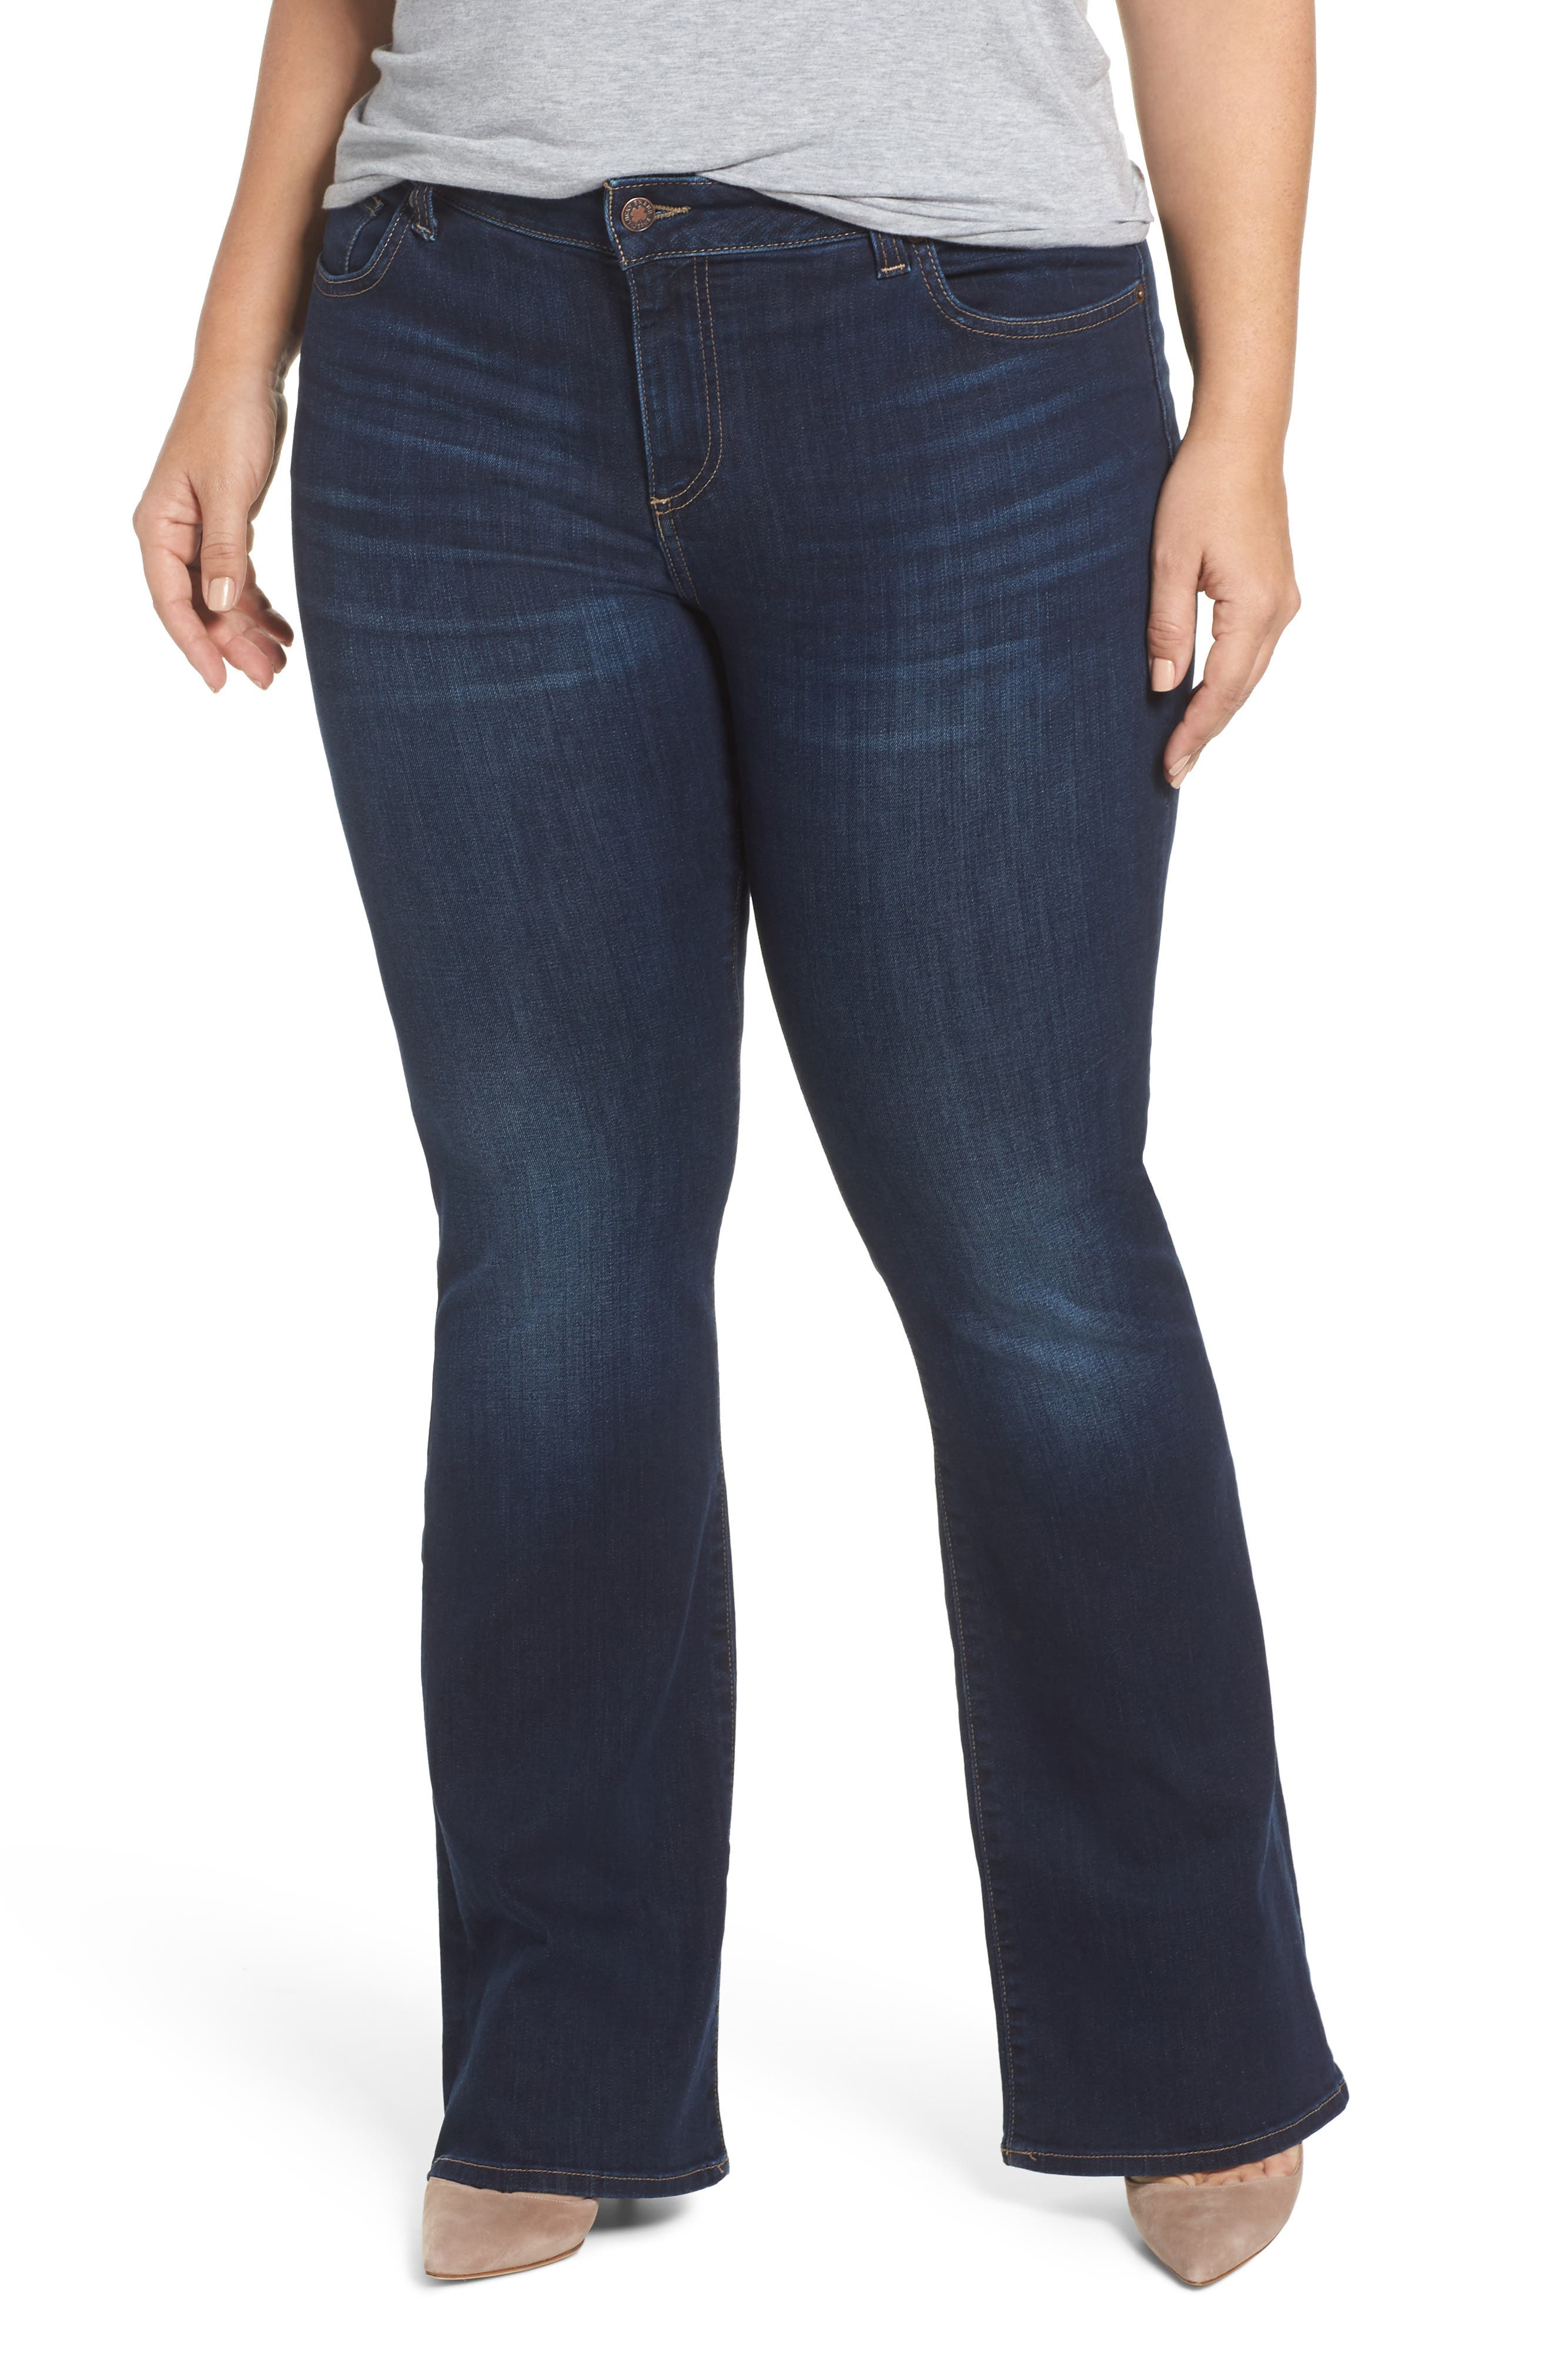 LUCKY BRAND, Ginger Bootcut Jeans, Main thumbnail 1, color, TWILIGHT BLUE